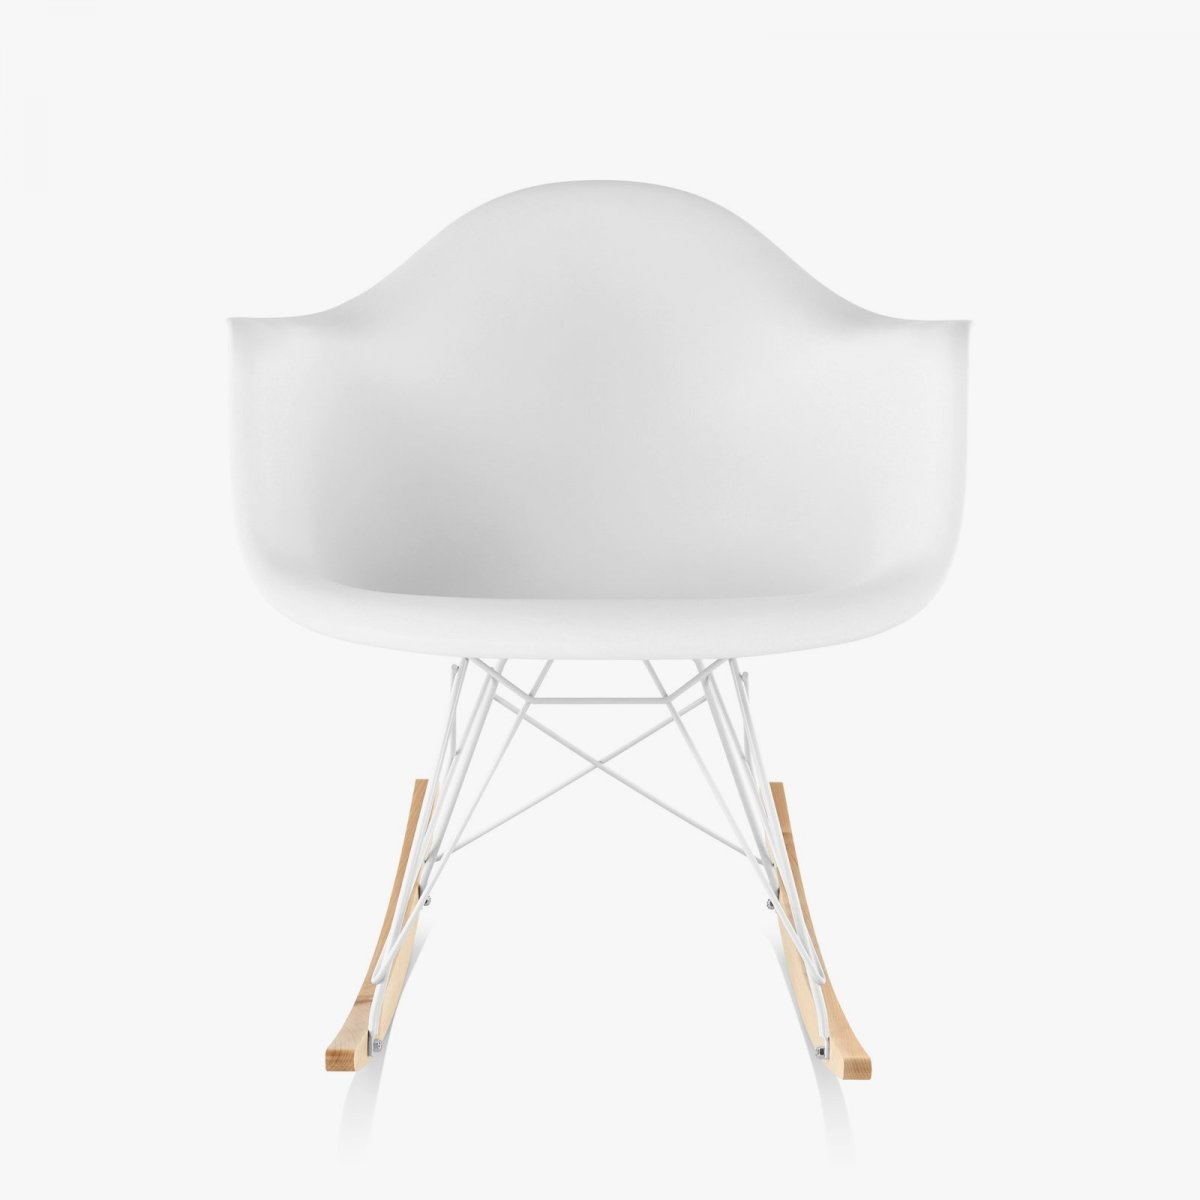 Eames Molded Plastic Armchair Rocker Base, white, front view.